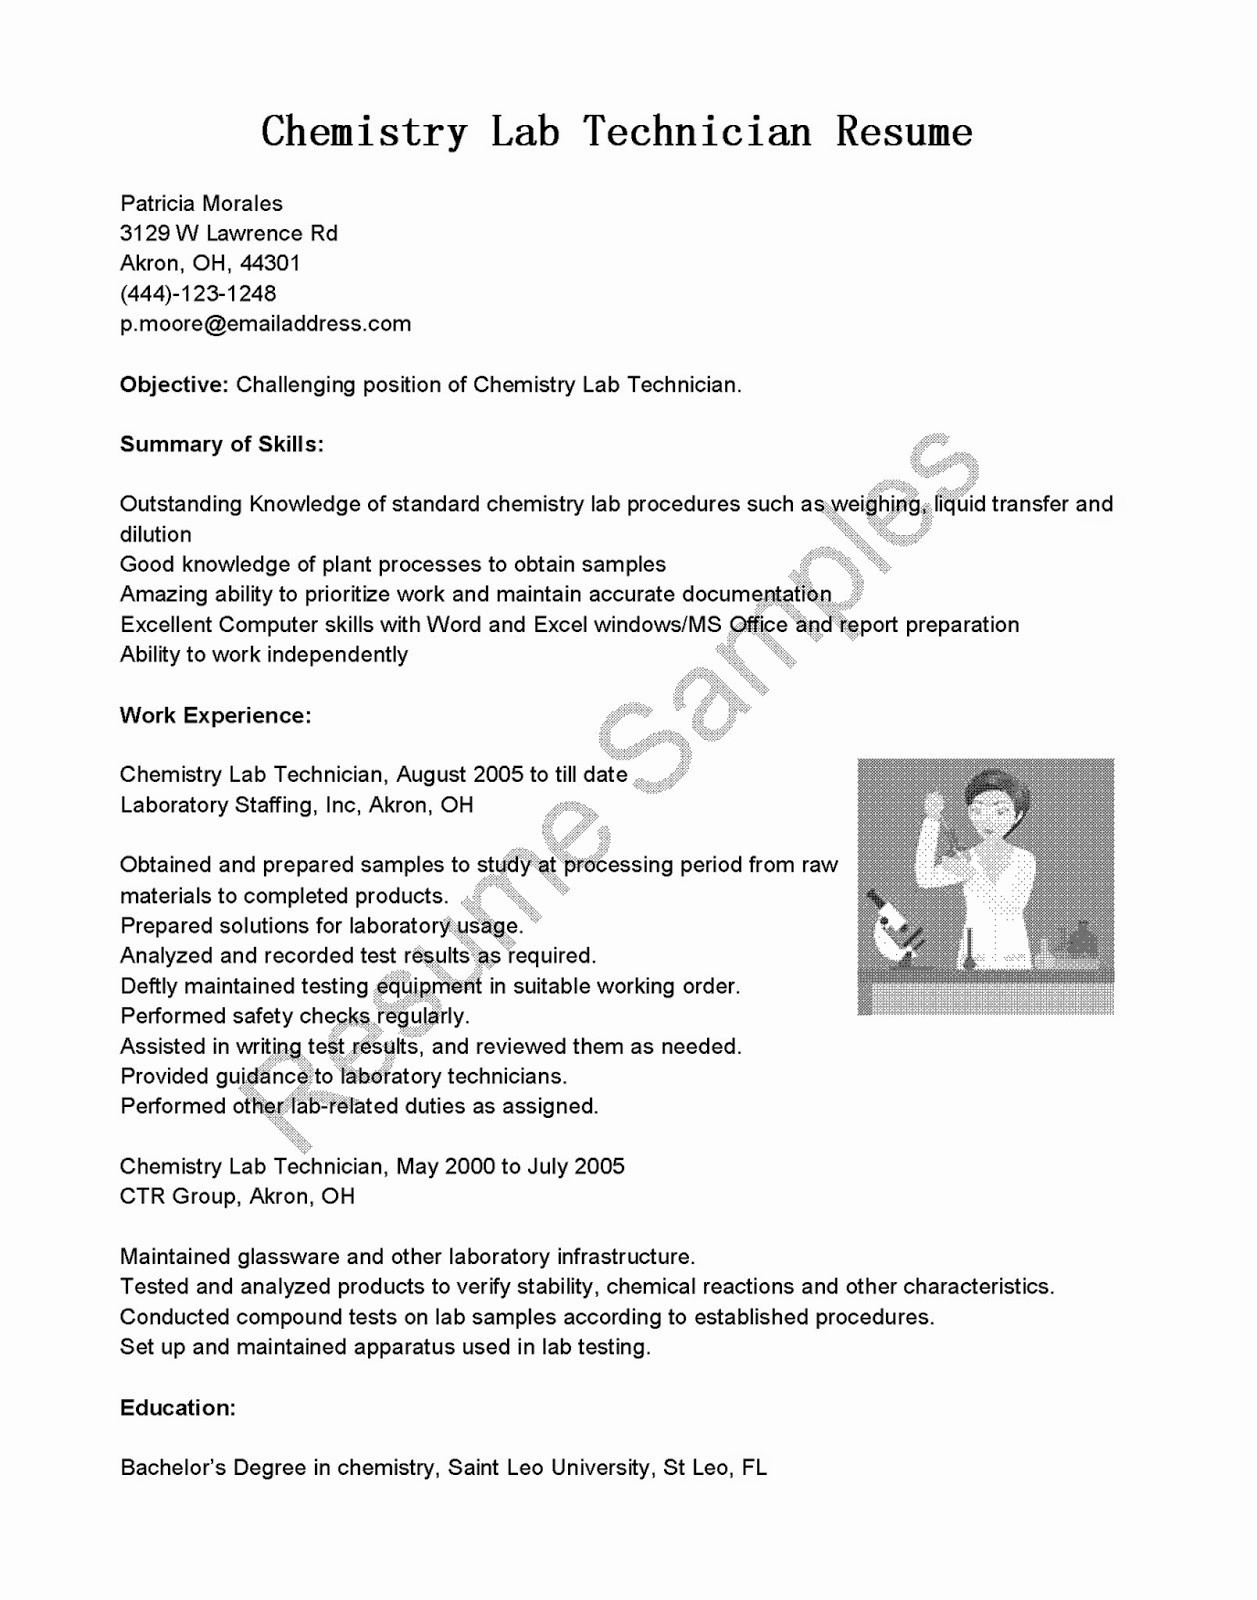 Pharmacy Technician Job Description for Resume - Pharmacy Technician Job Duties Resume Valid Tech Resume Template